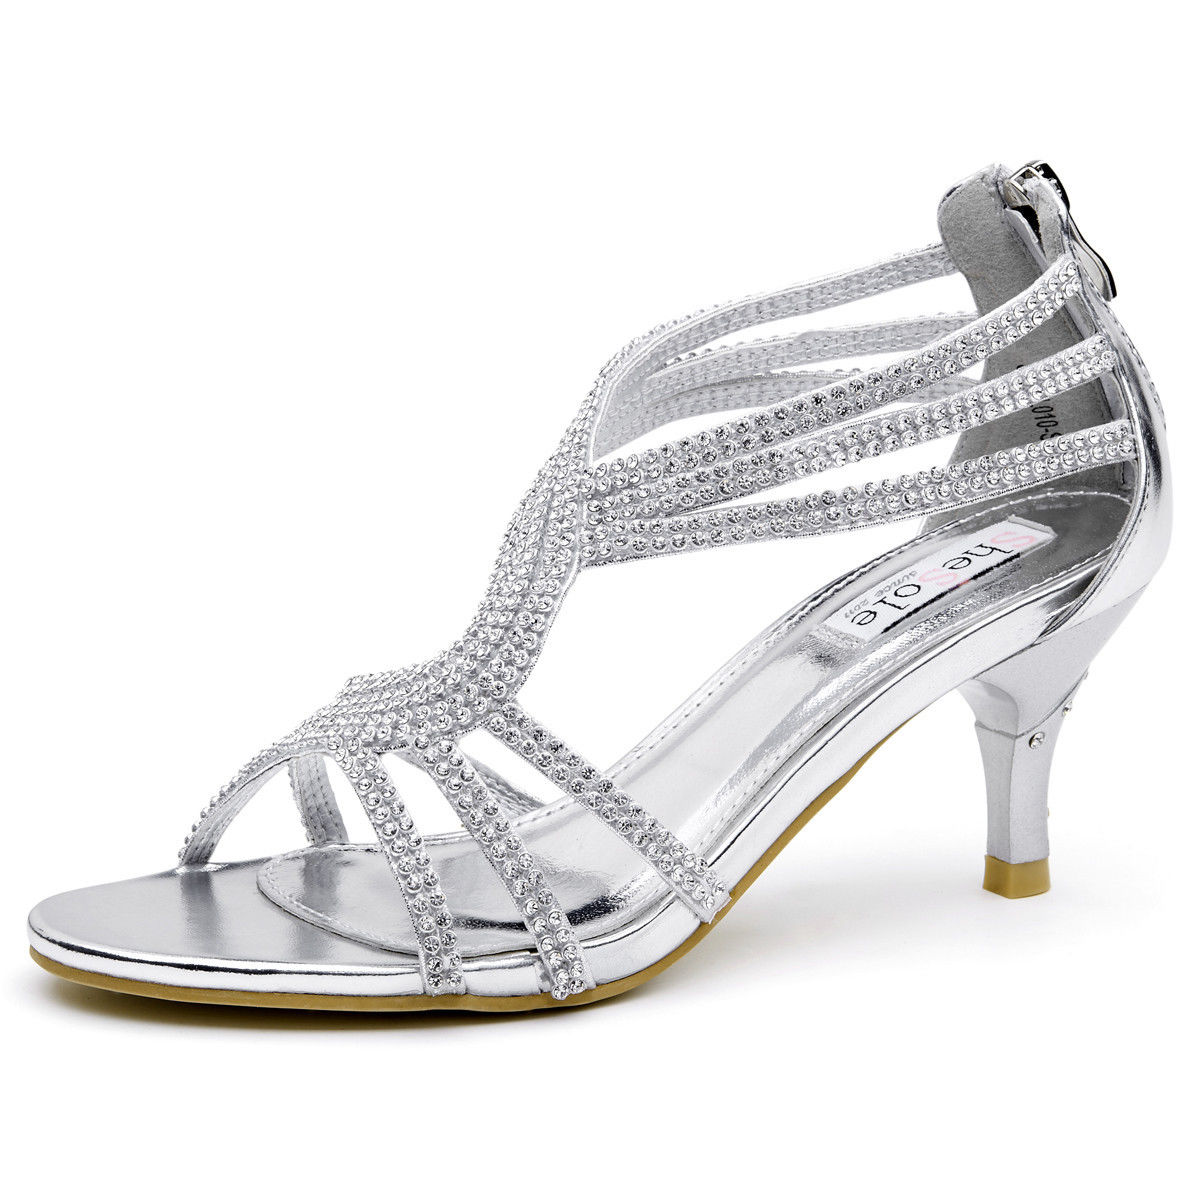 Womens-Ladies-Low-Kitten-Heel-Wedding-Glitter-Sandals-Strappy-Silver-Shoes thumbnail 30